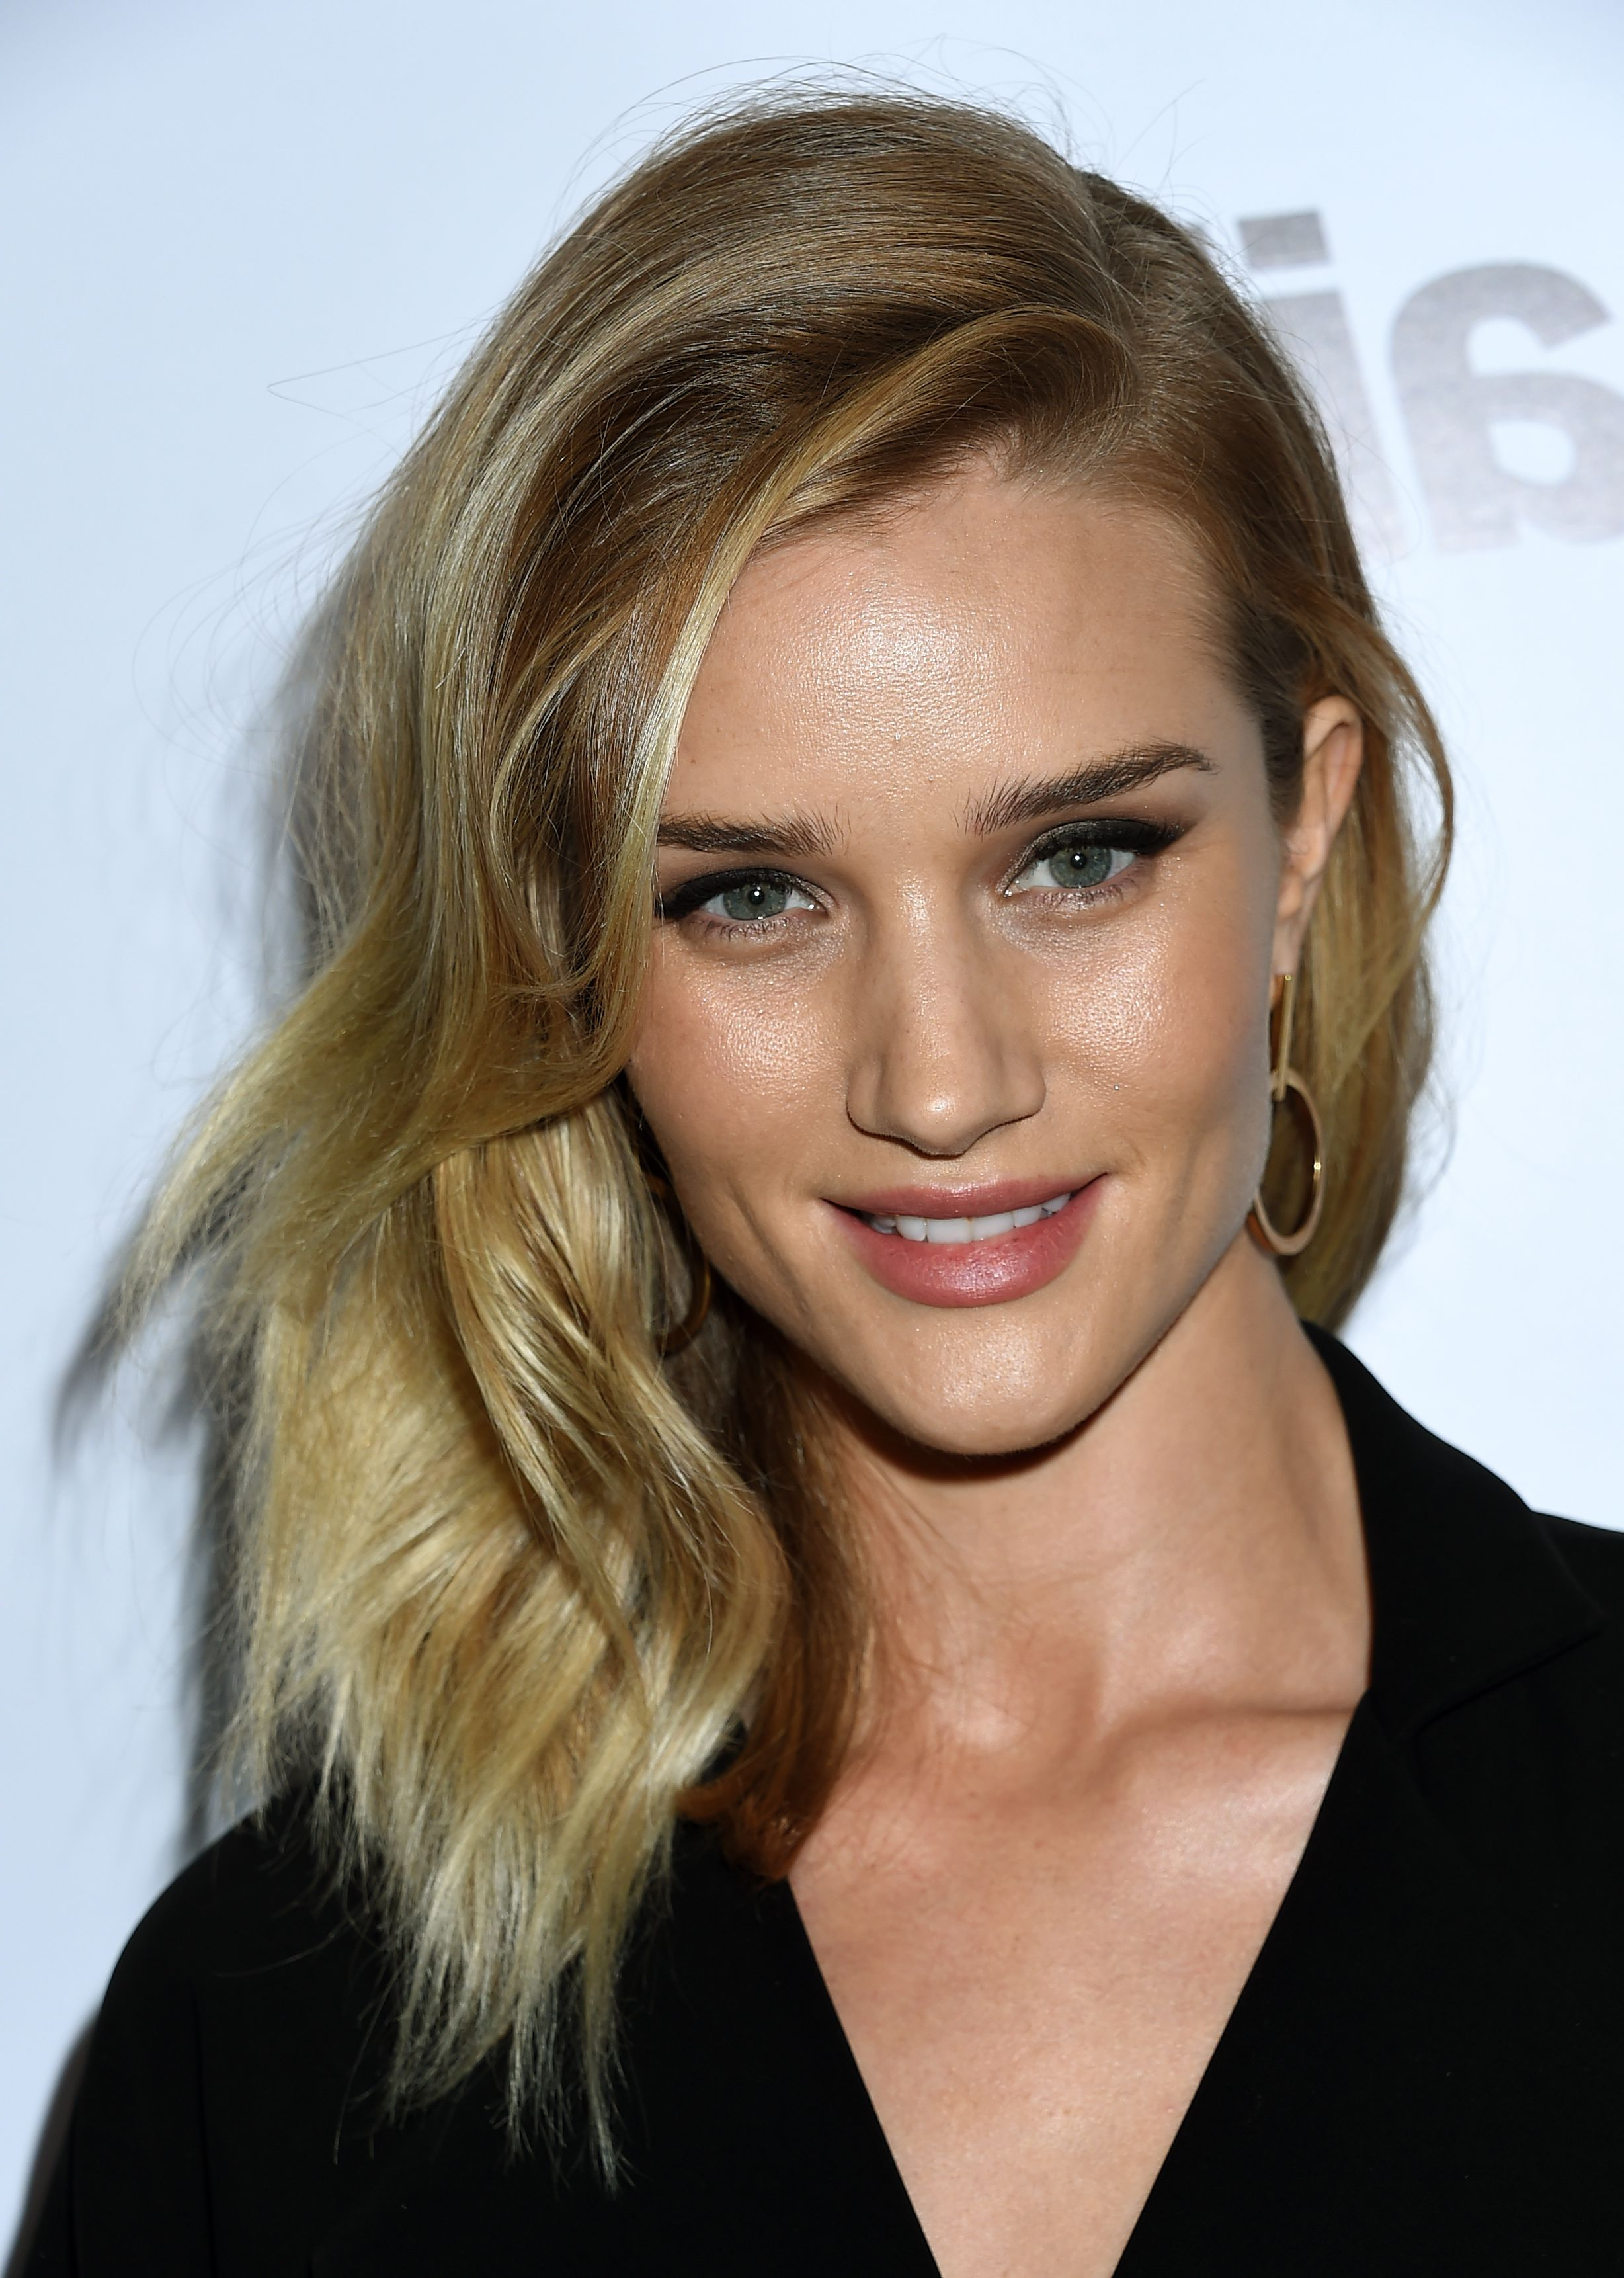 The 13 Best Hairstyles For Square Faces With Regard To Short Haircuts For High Foreheads (View 14 of 25)